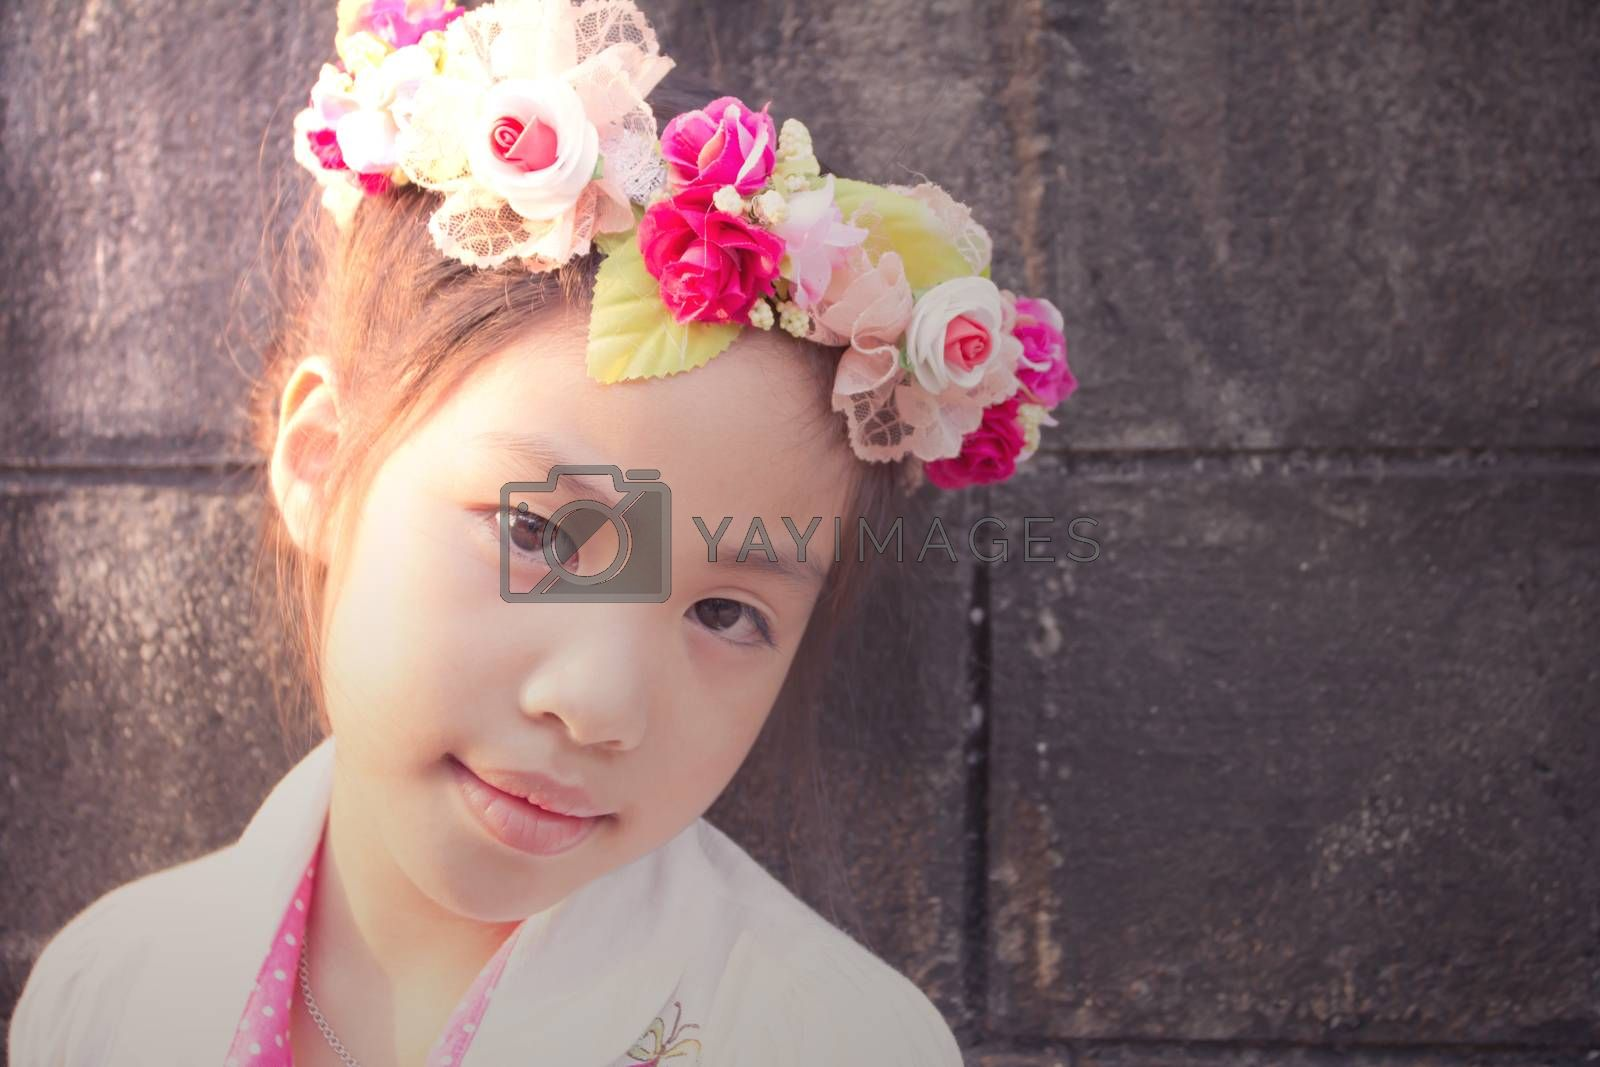 Lovely little girl with flowers on the head, vintage texture